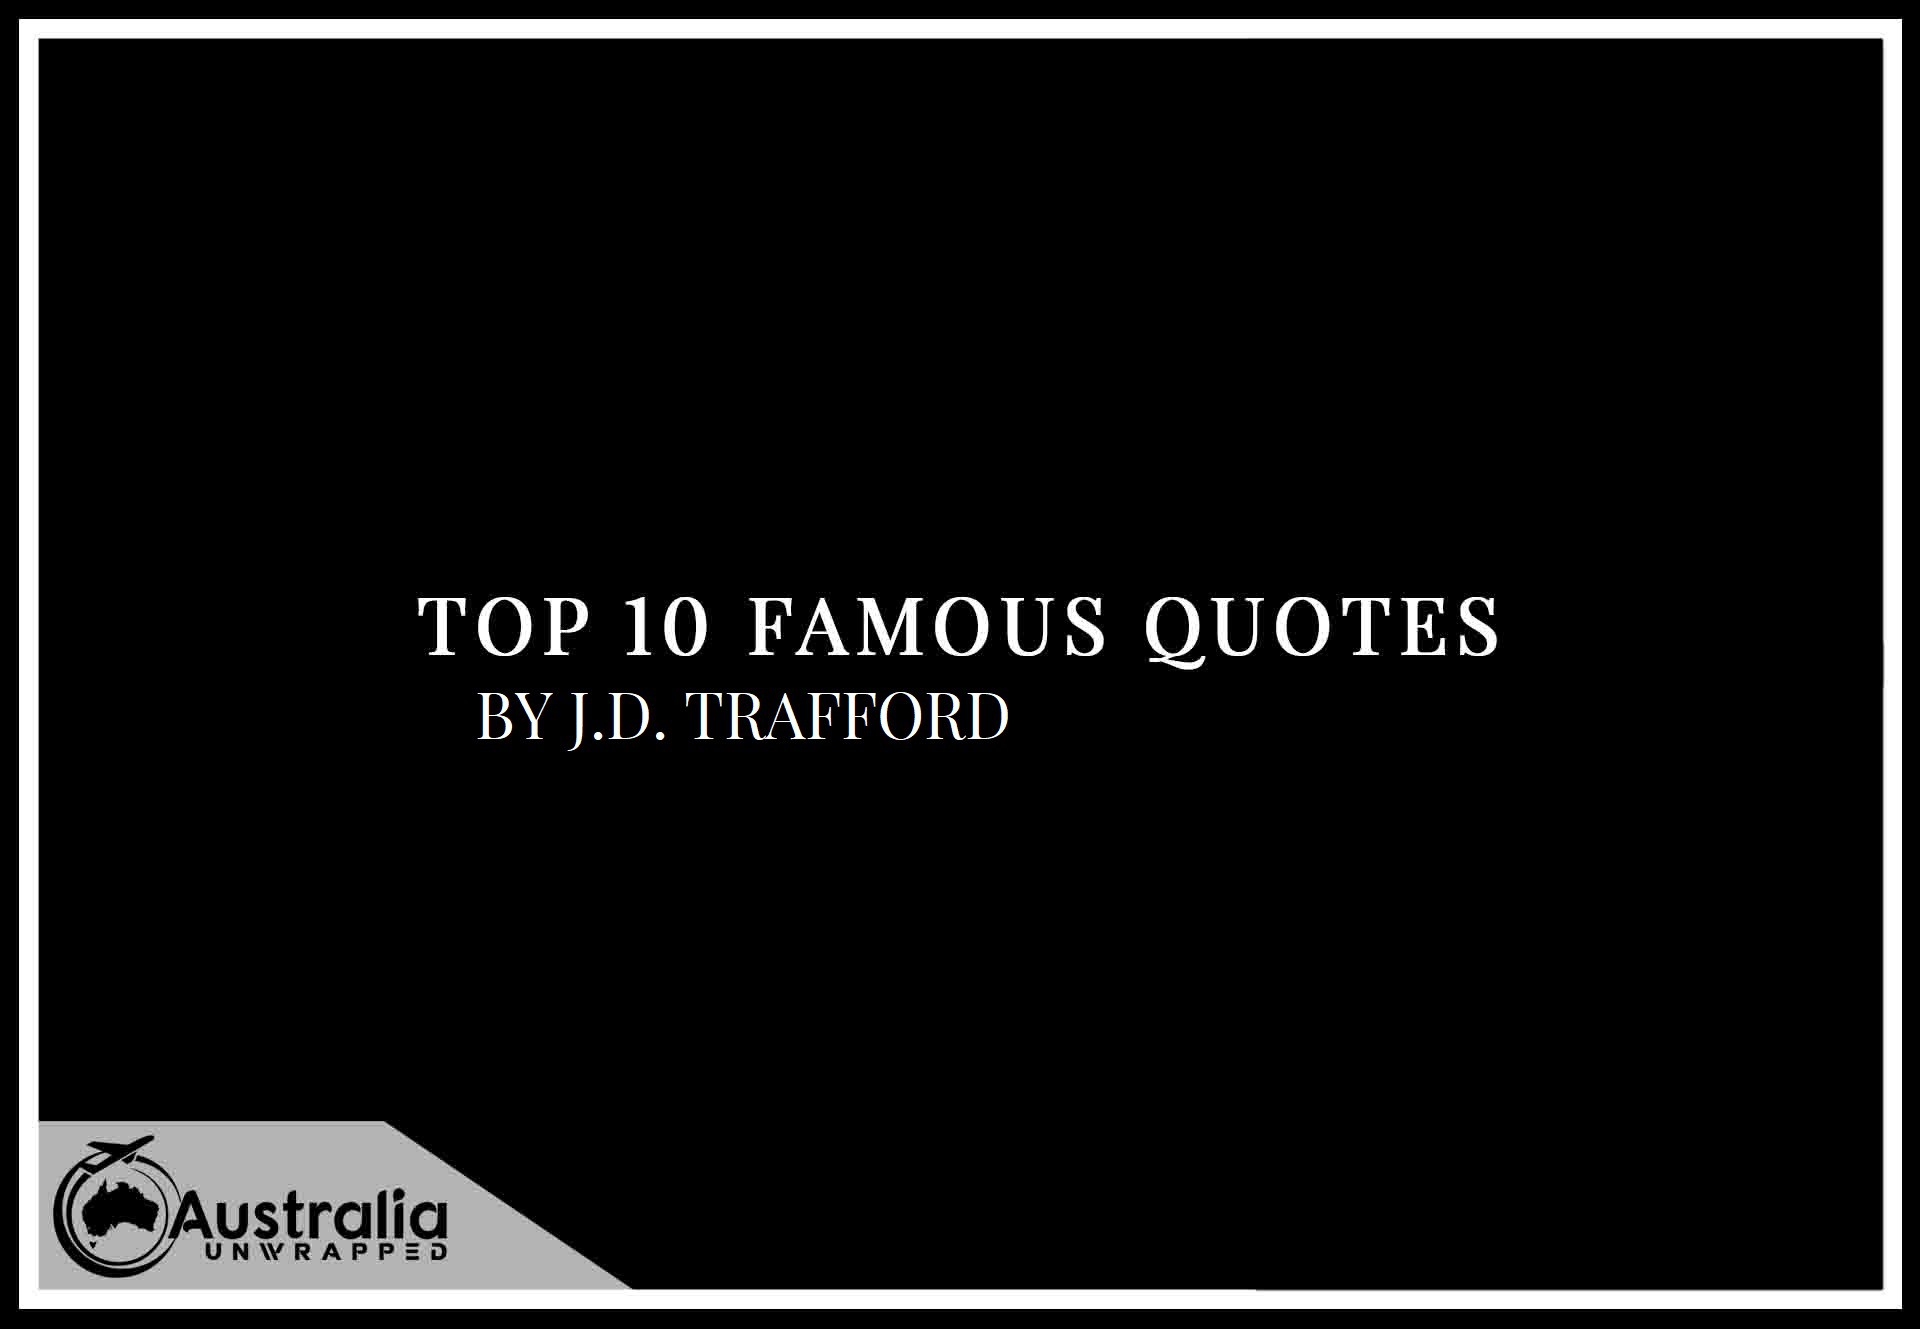 Top 10 Famous Quotes by Author J.D. Trafford